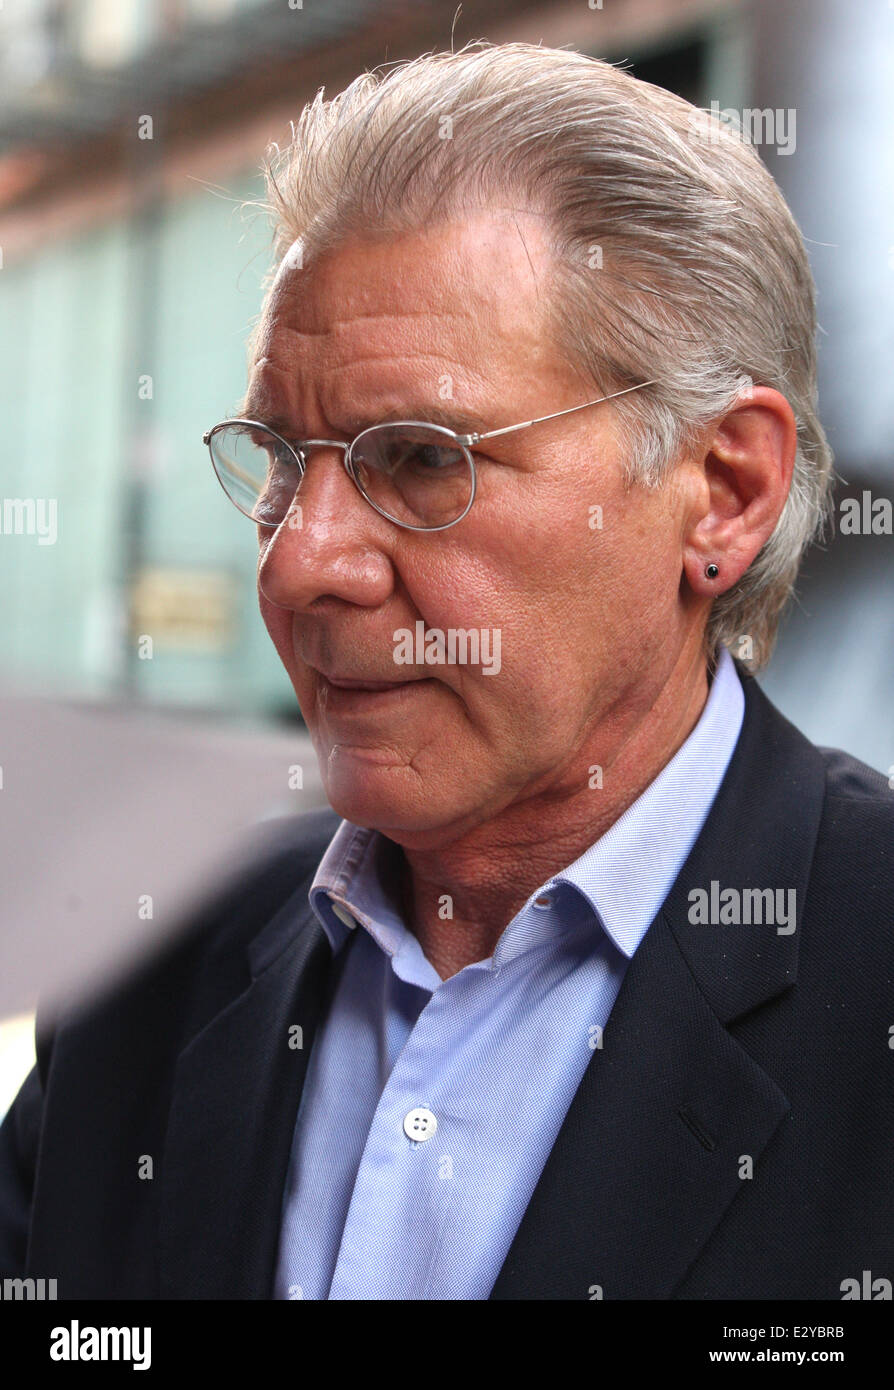 Wire Rimmed Glasses High Resolution Stock Photography And Images Alamy